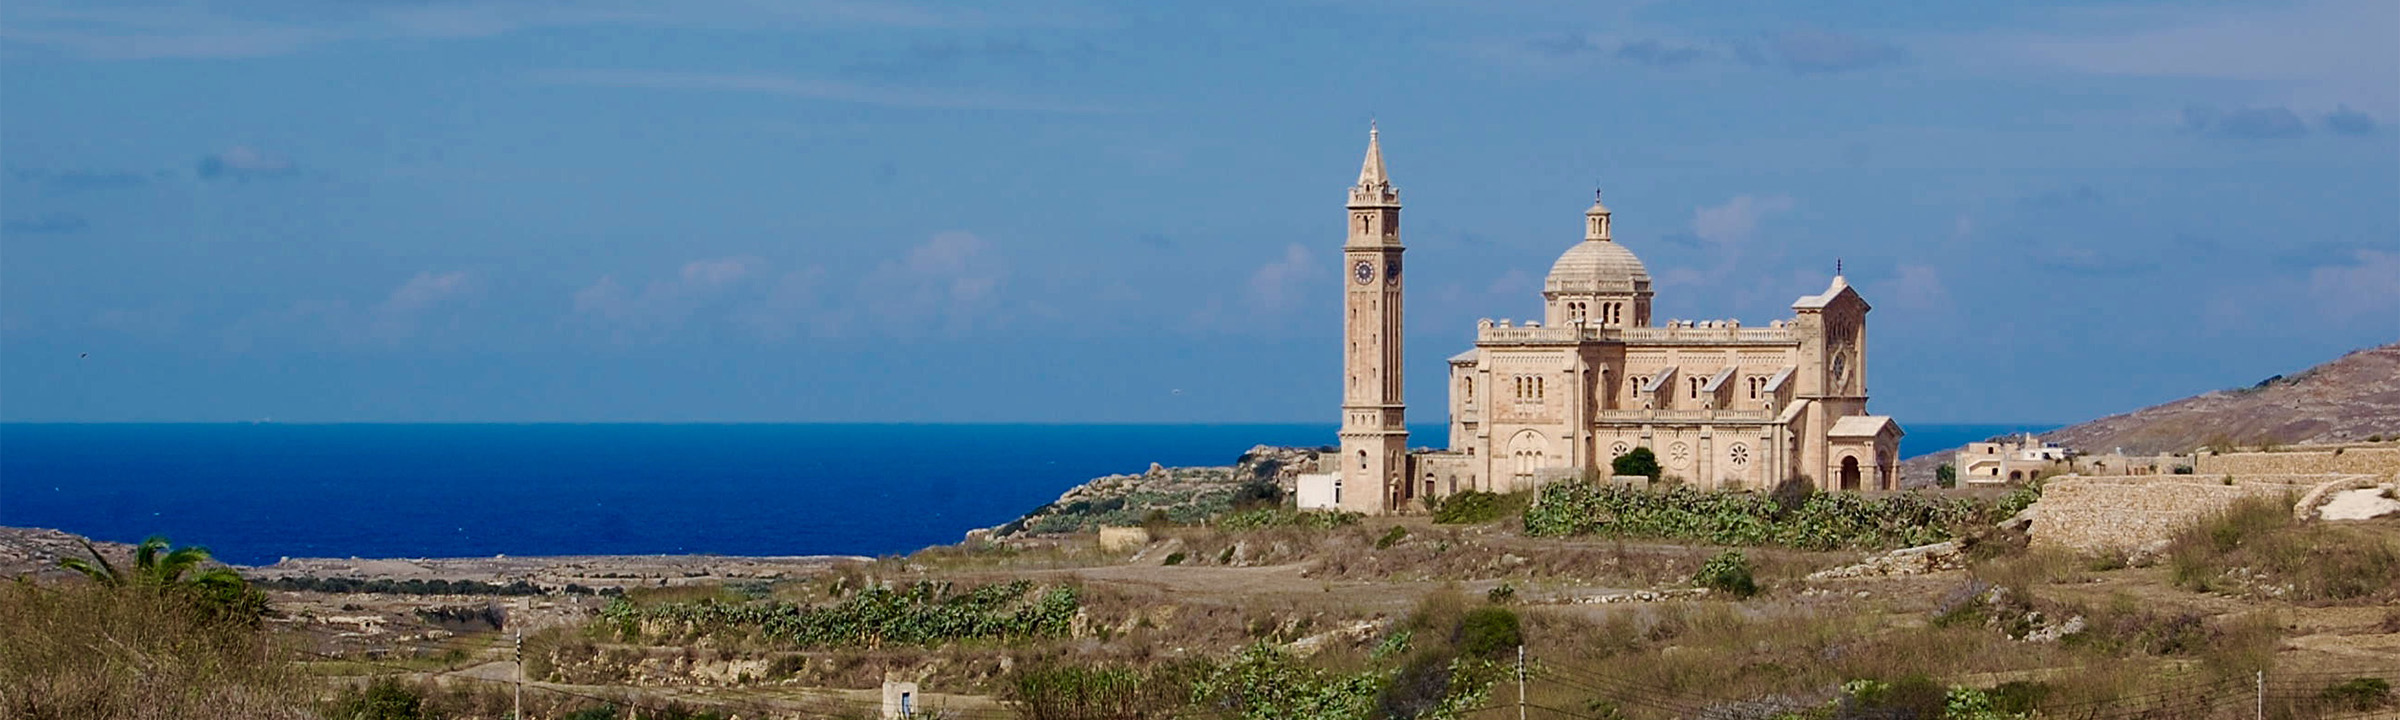 Ta' Pinu National Shrine